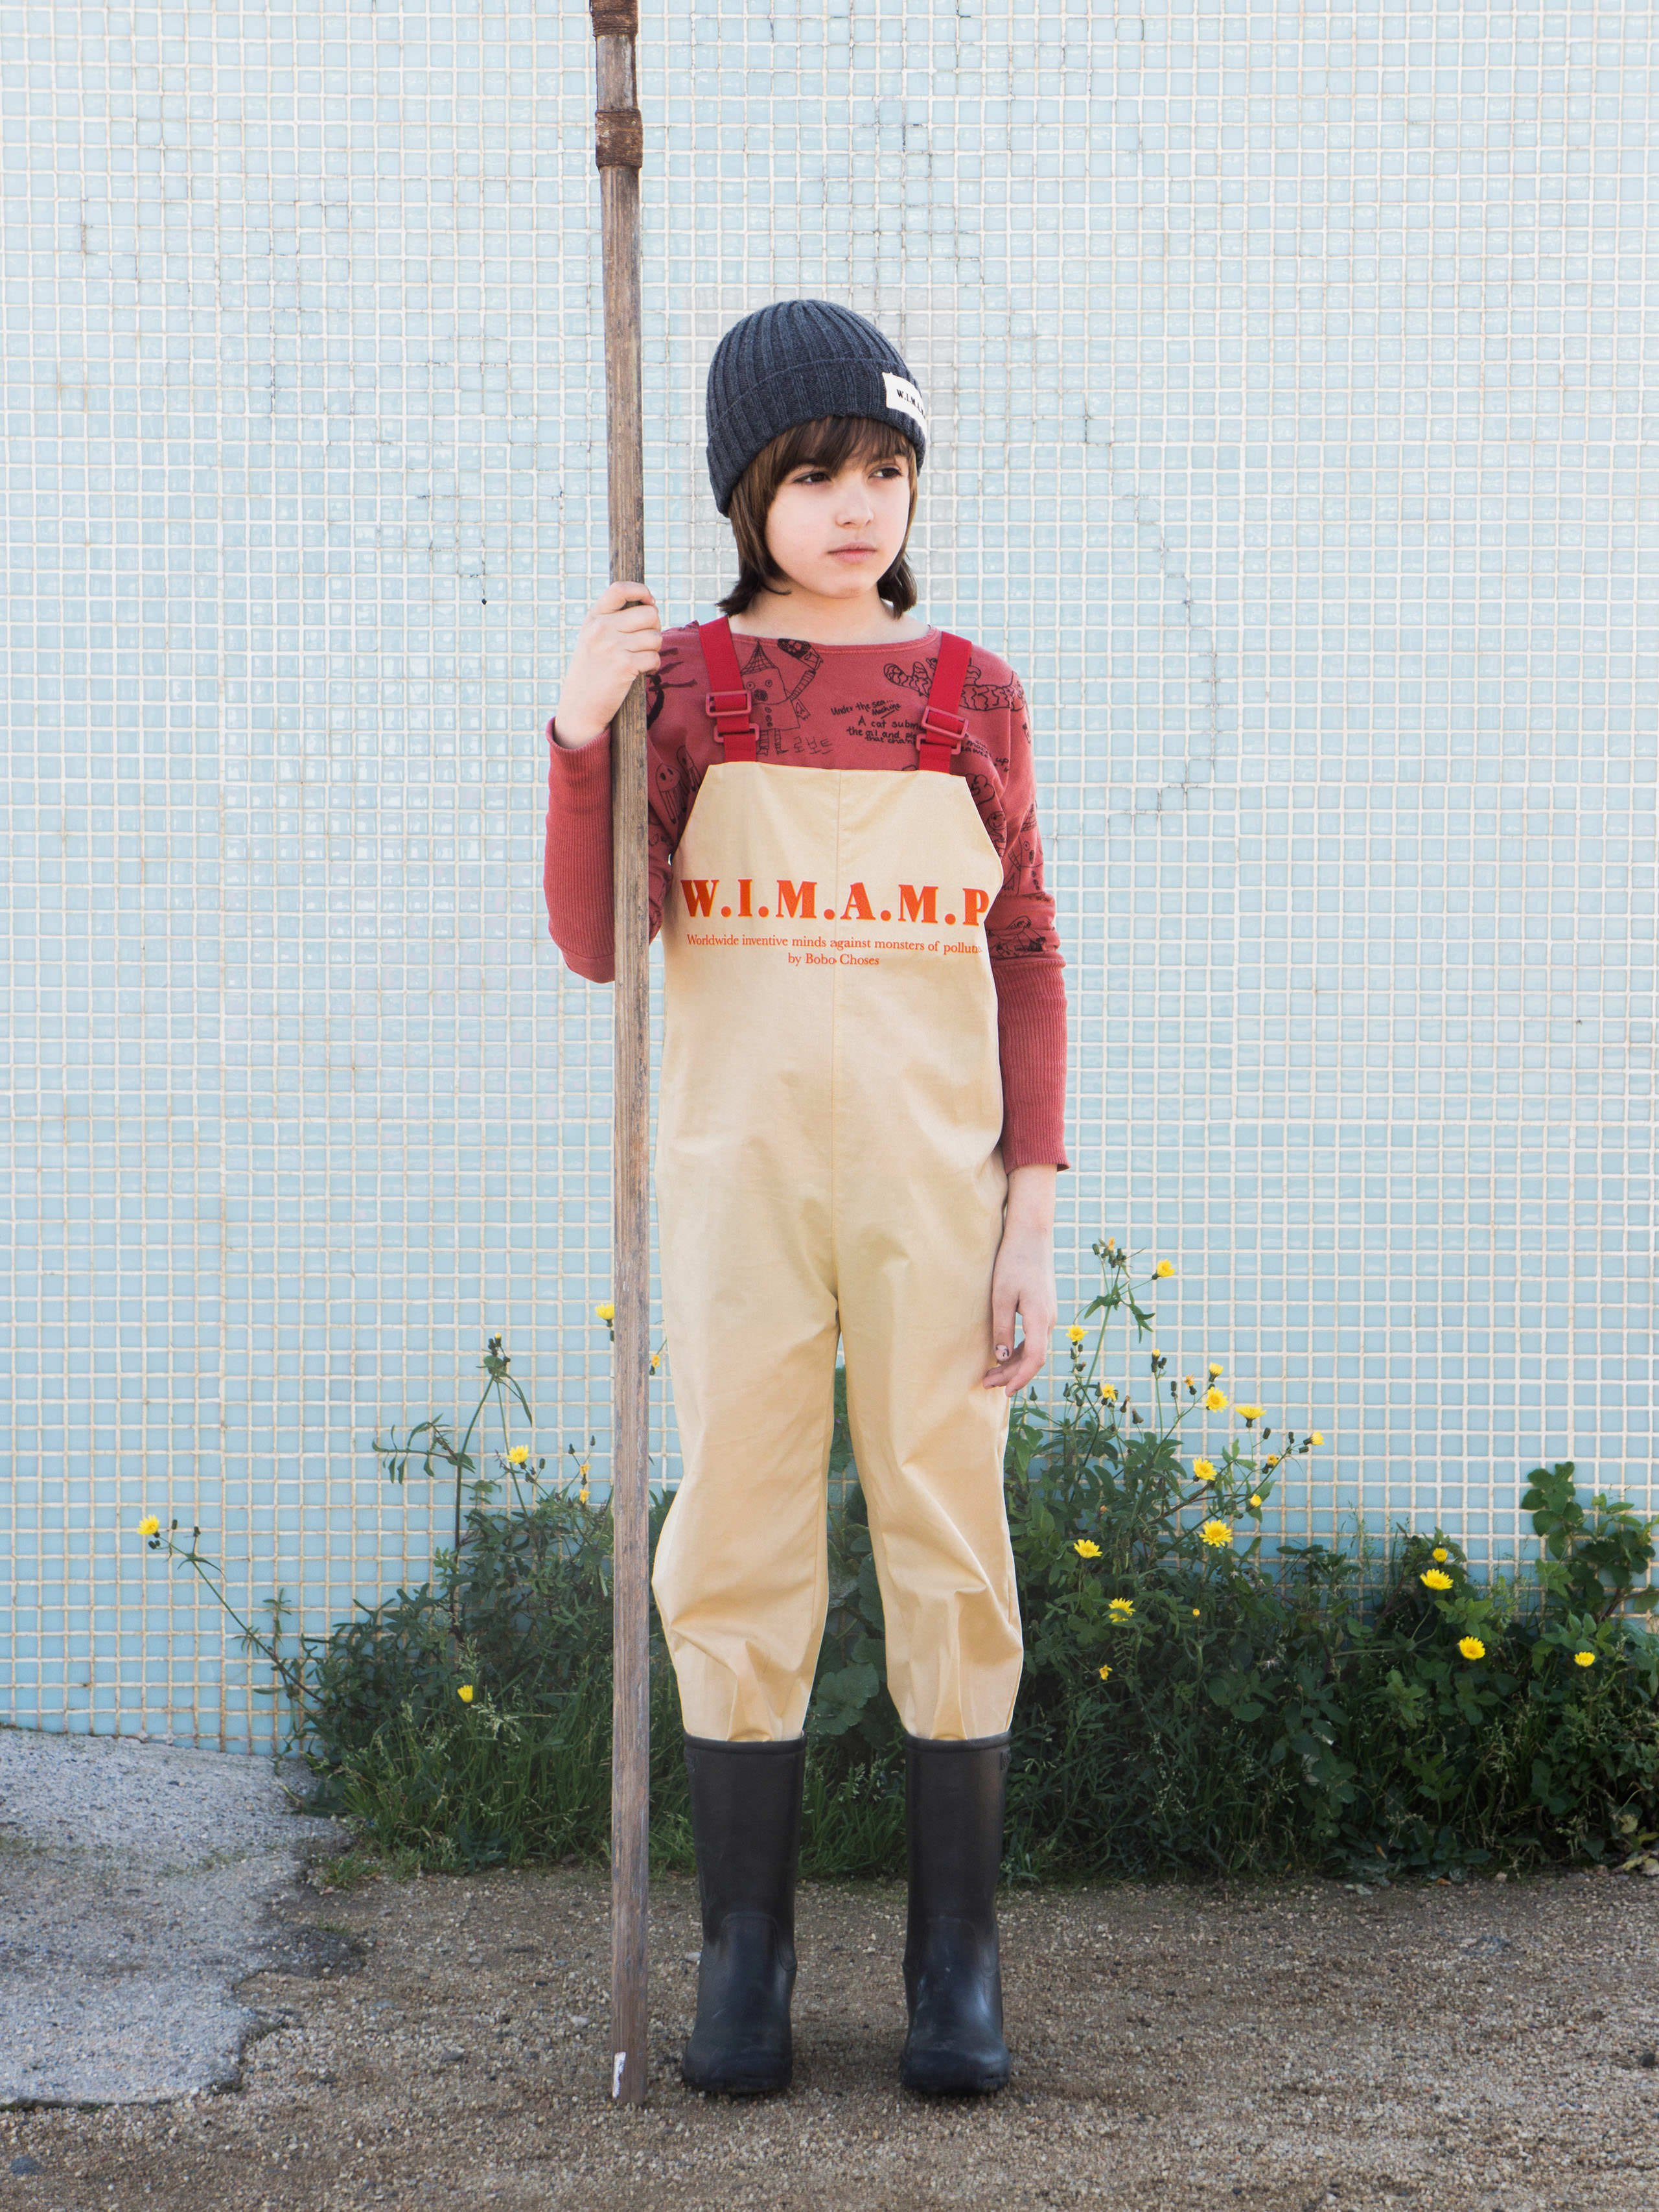 W.I.M.A.M.P. Dungarees